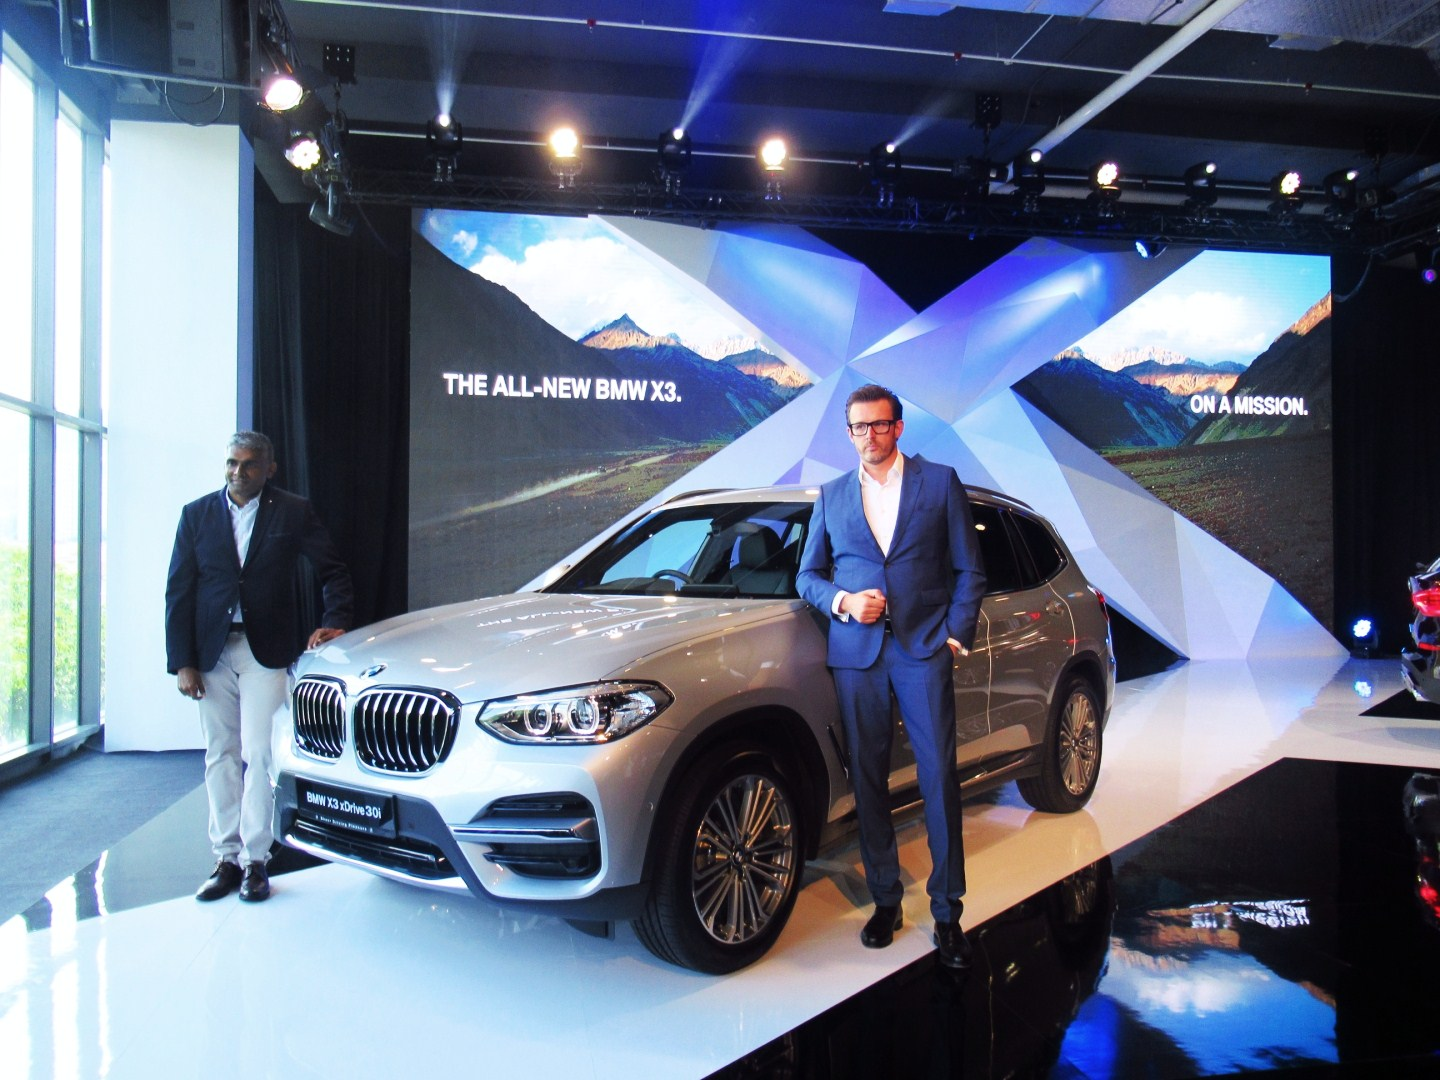 Motoring-Malaysia: The All-New Third Generation BMW X3 Has